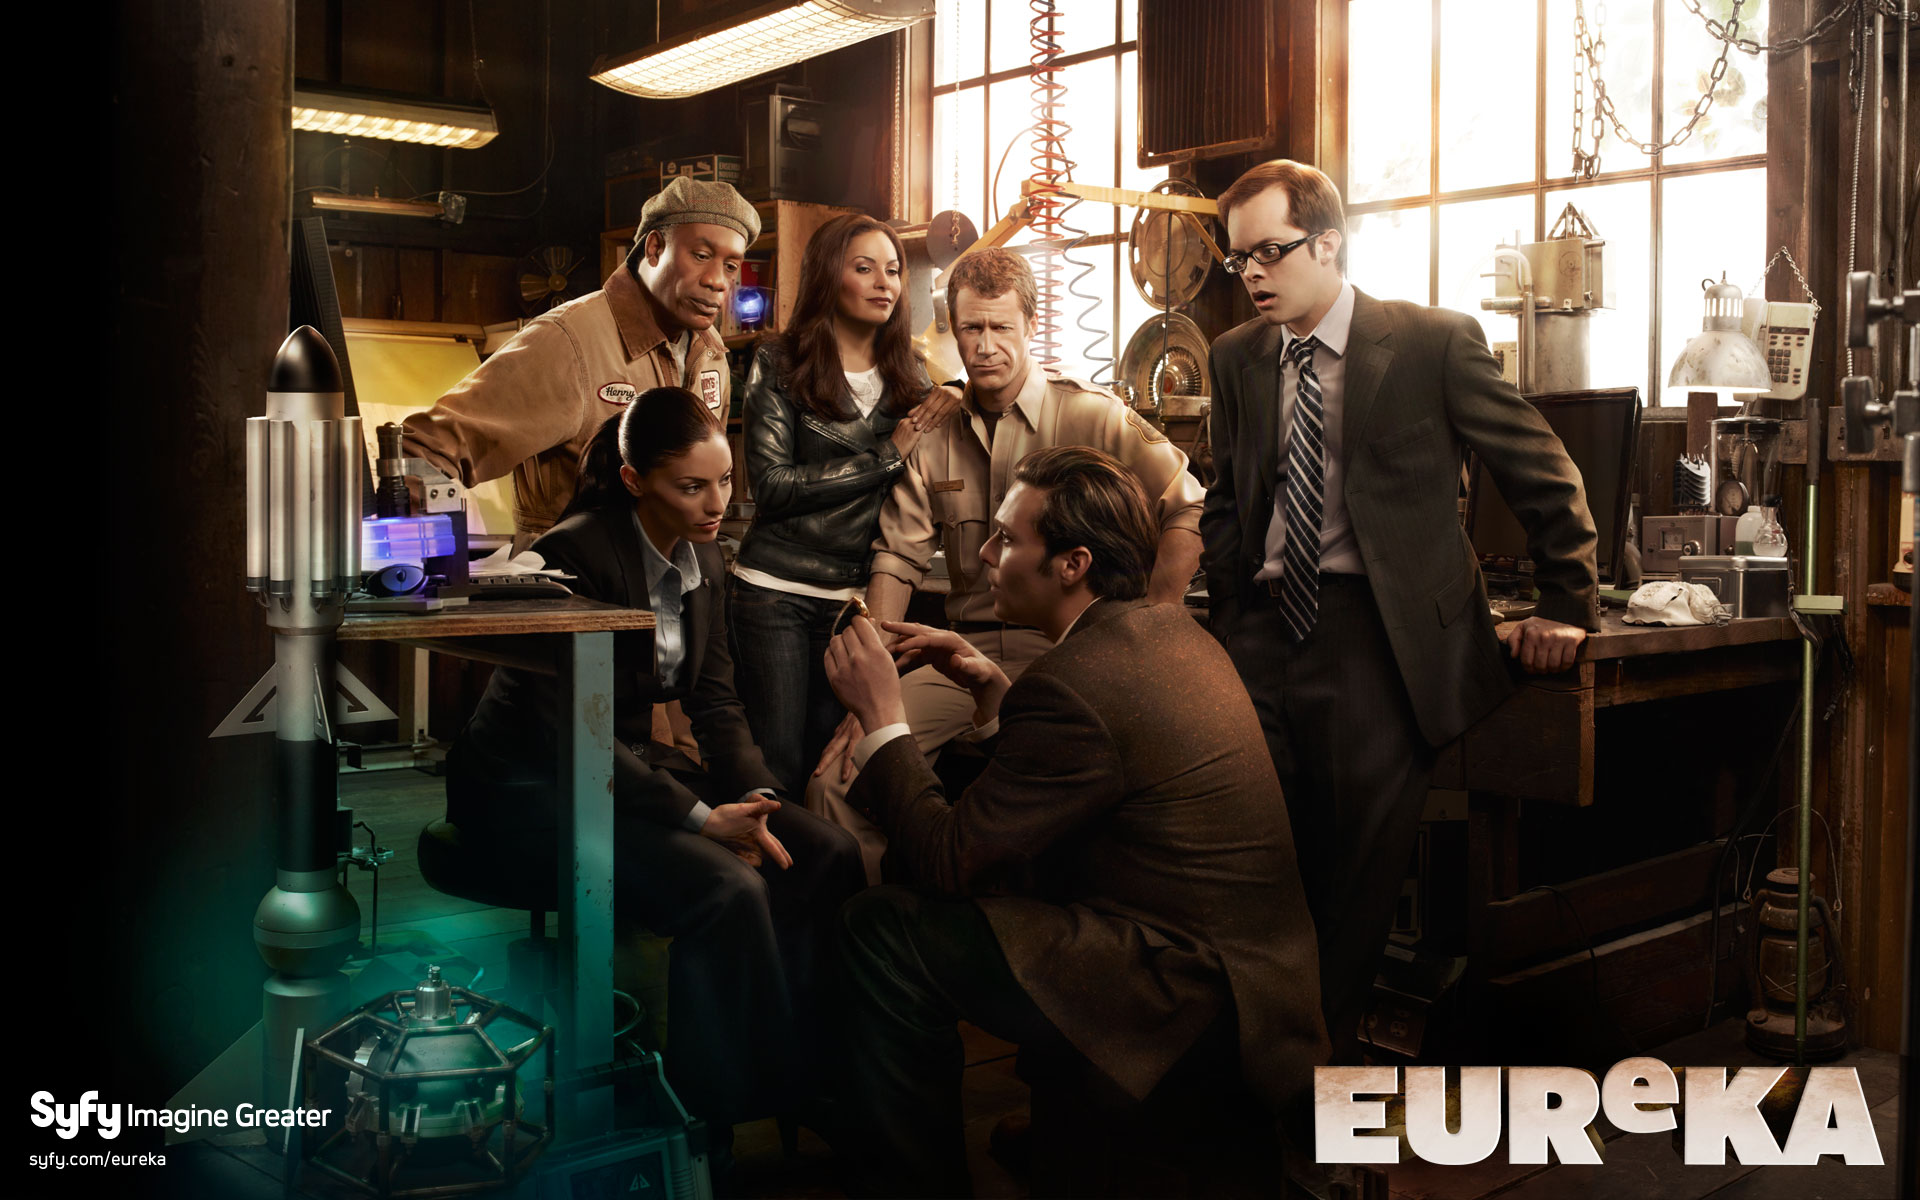 Eureka - courtesy of syfy.com